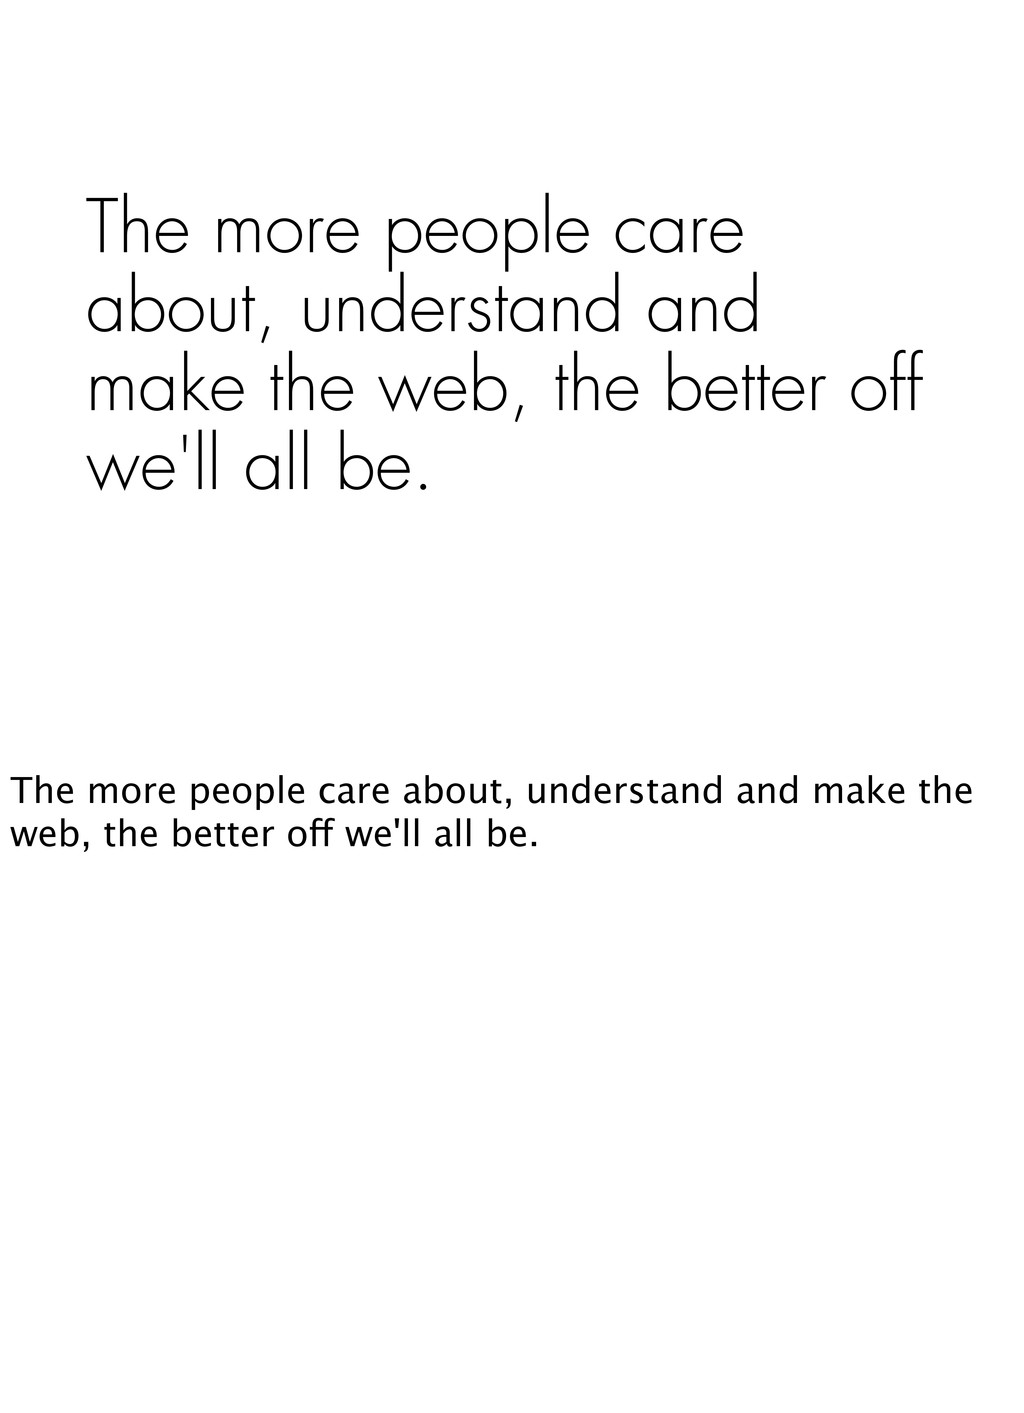 The more people care about, understand and make...